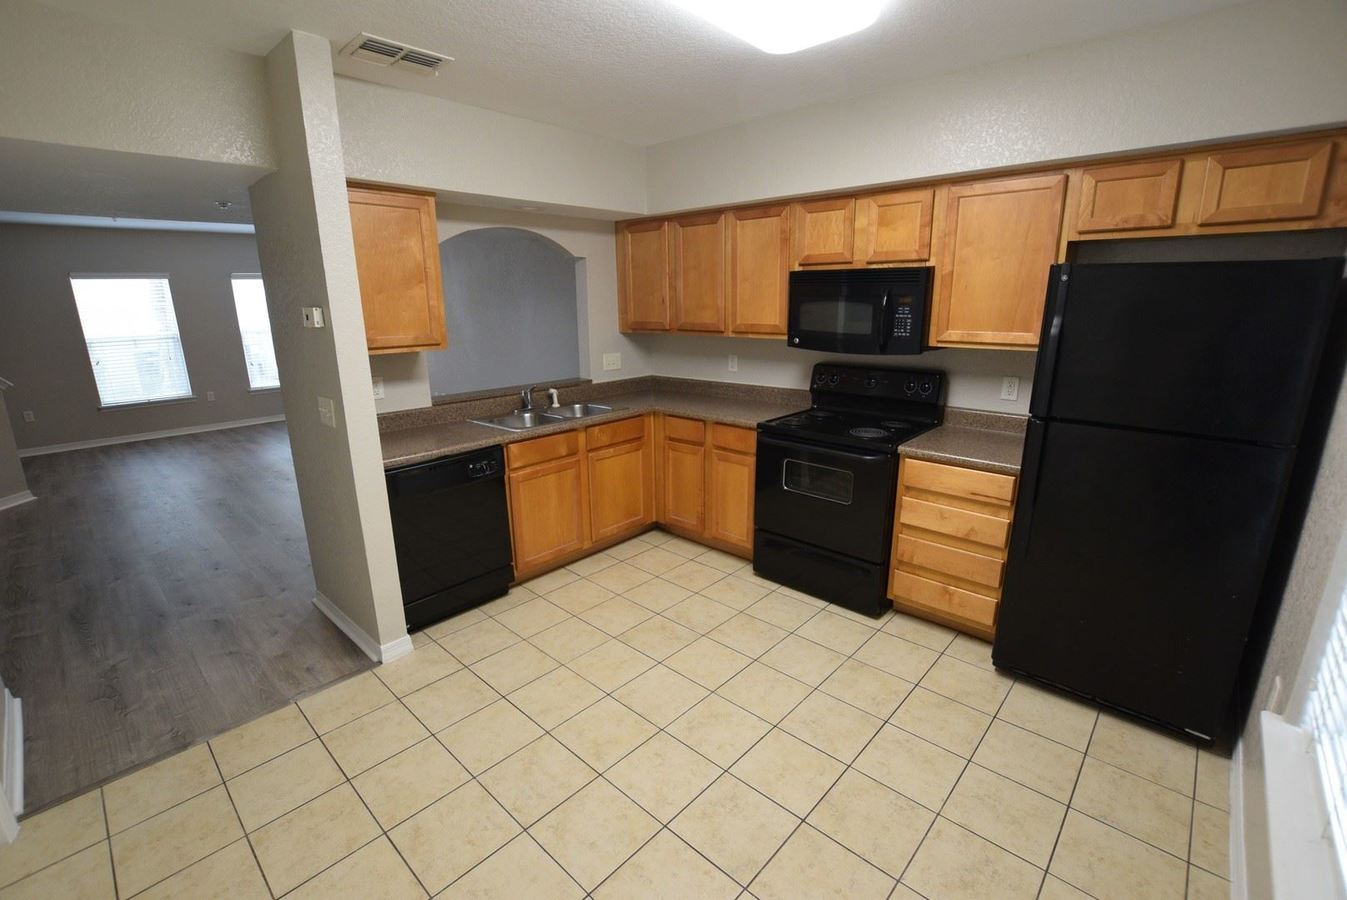 2 Bedrooms 2 Bathrooms Apartment for rent at 3656 N Goldenrod Road in Winter Park, FL